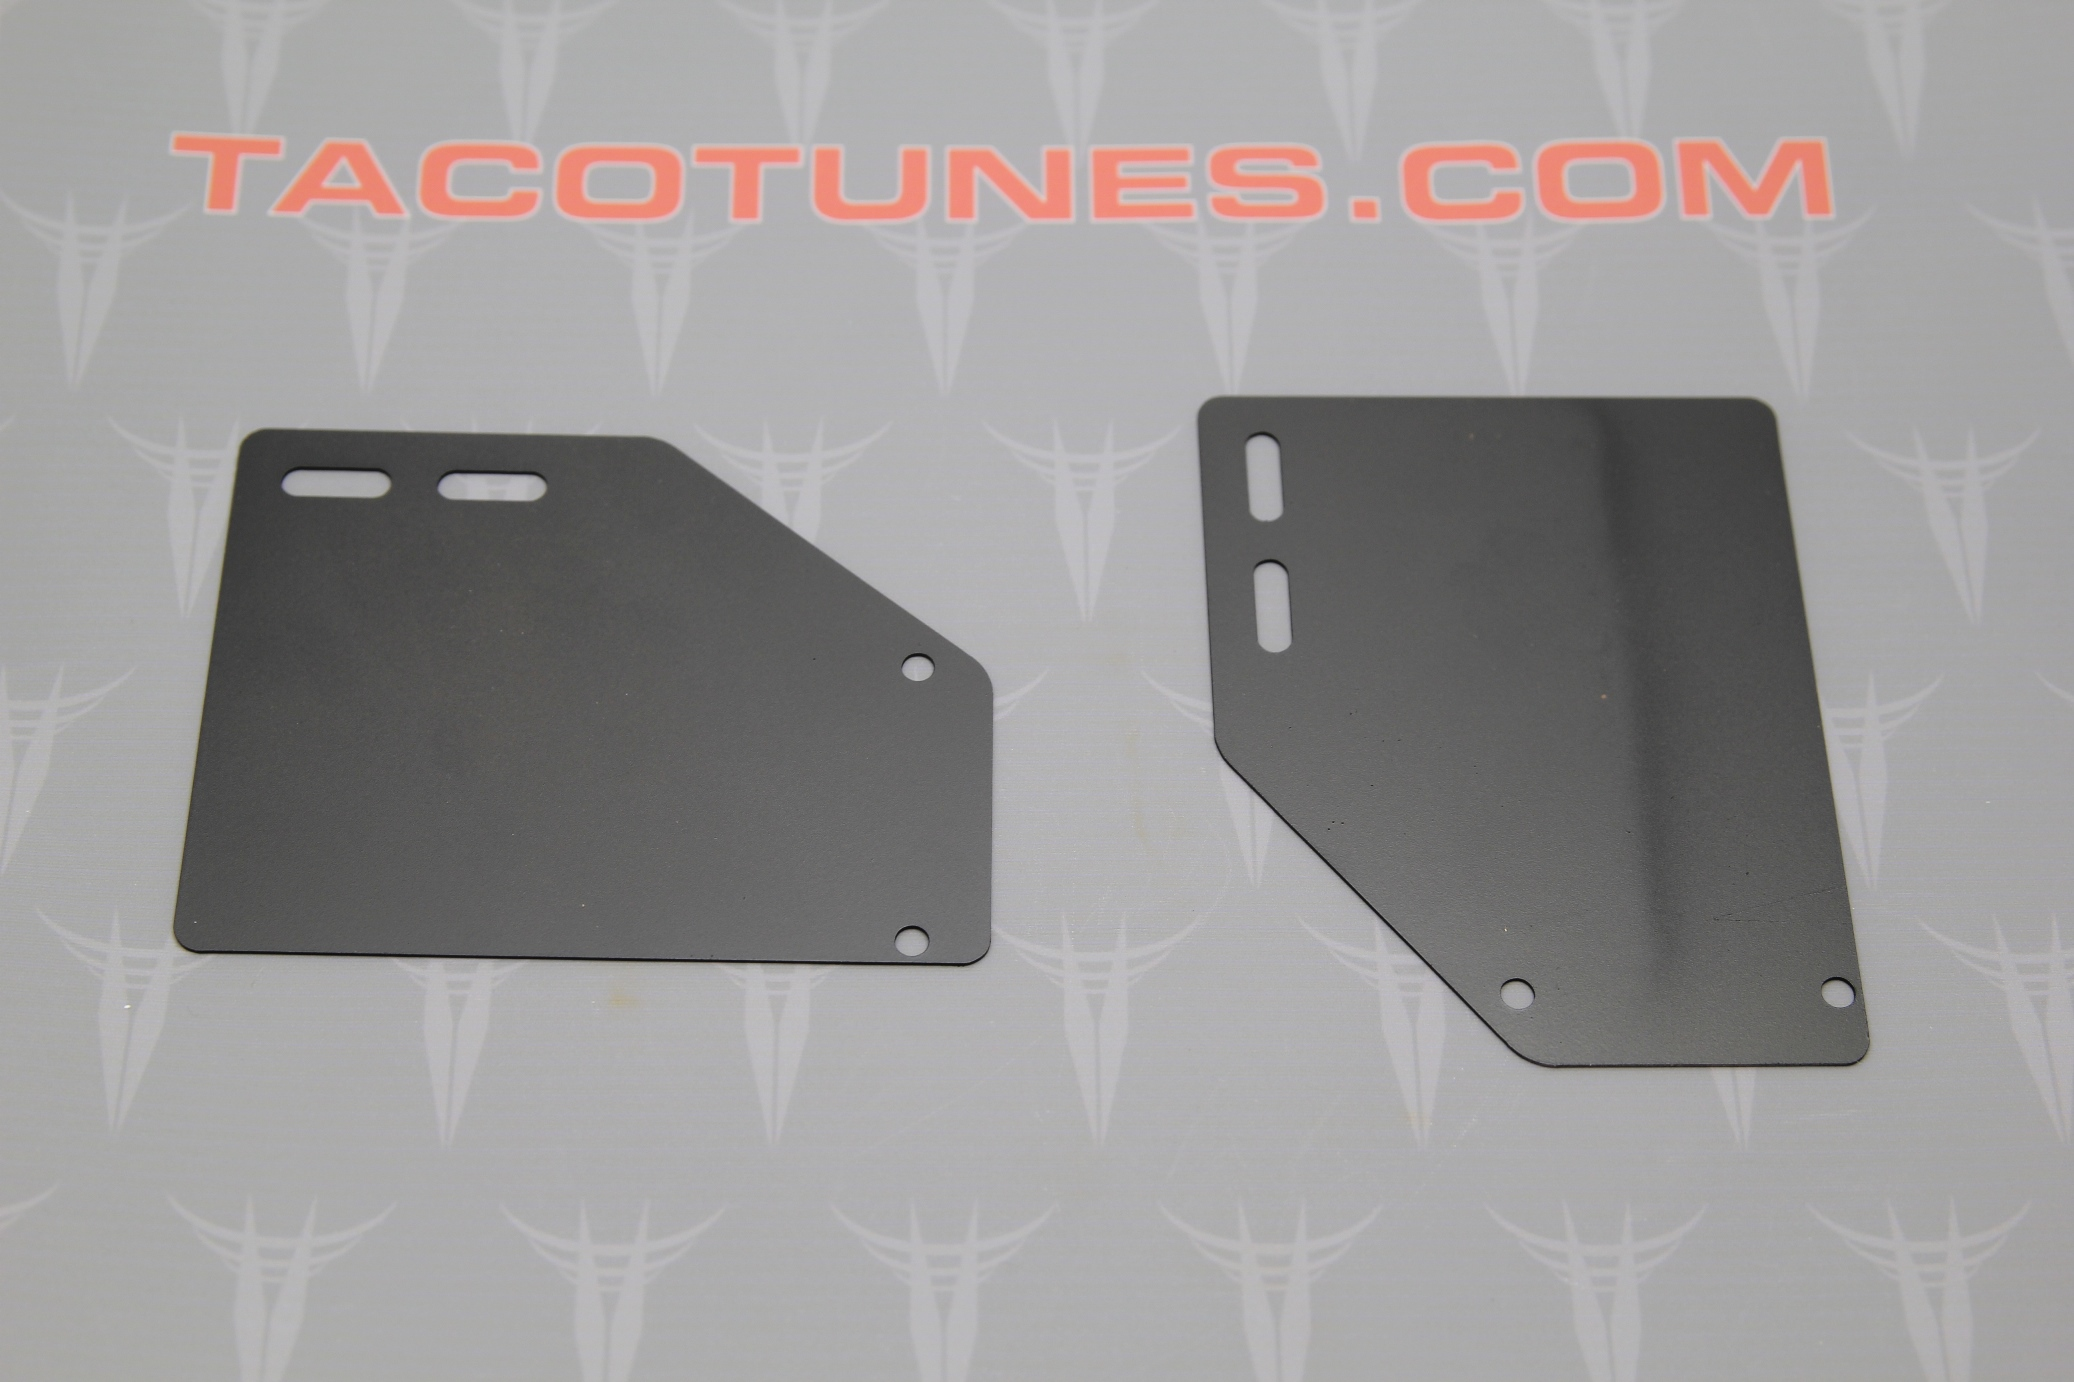 toyota tundra front door crossover mounts for component speakers. Black Bedroom Furniture Sets. Home Design Ideas